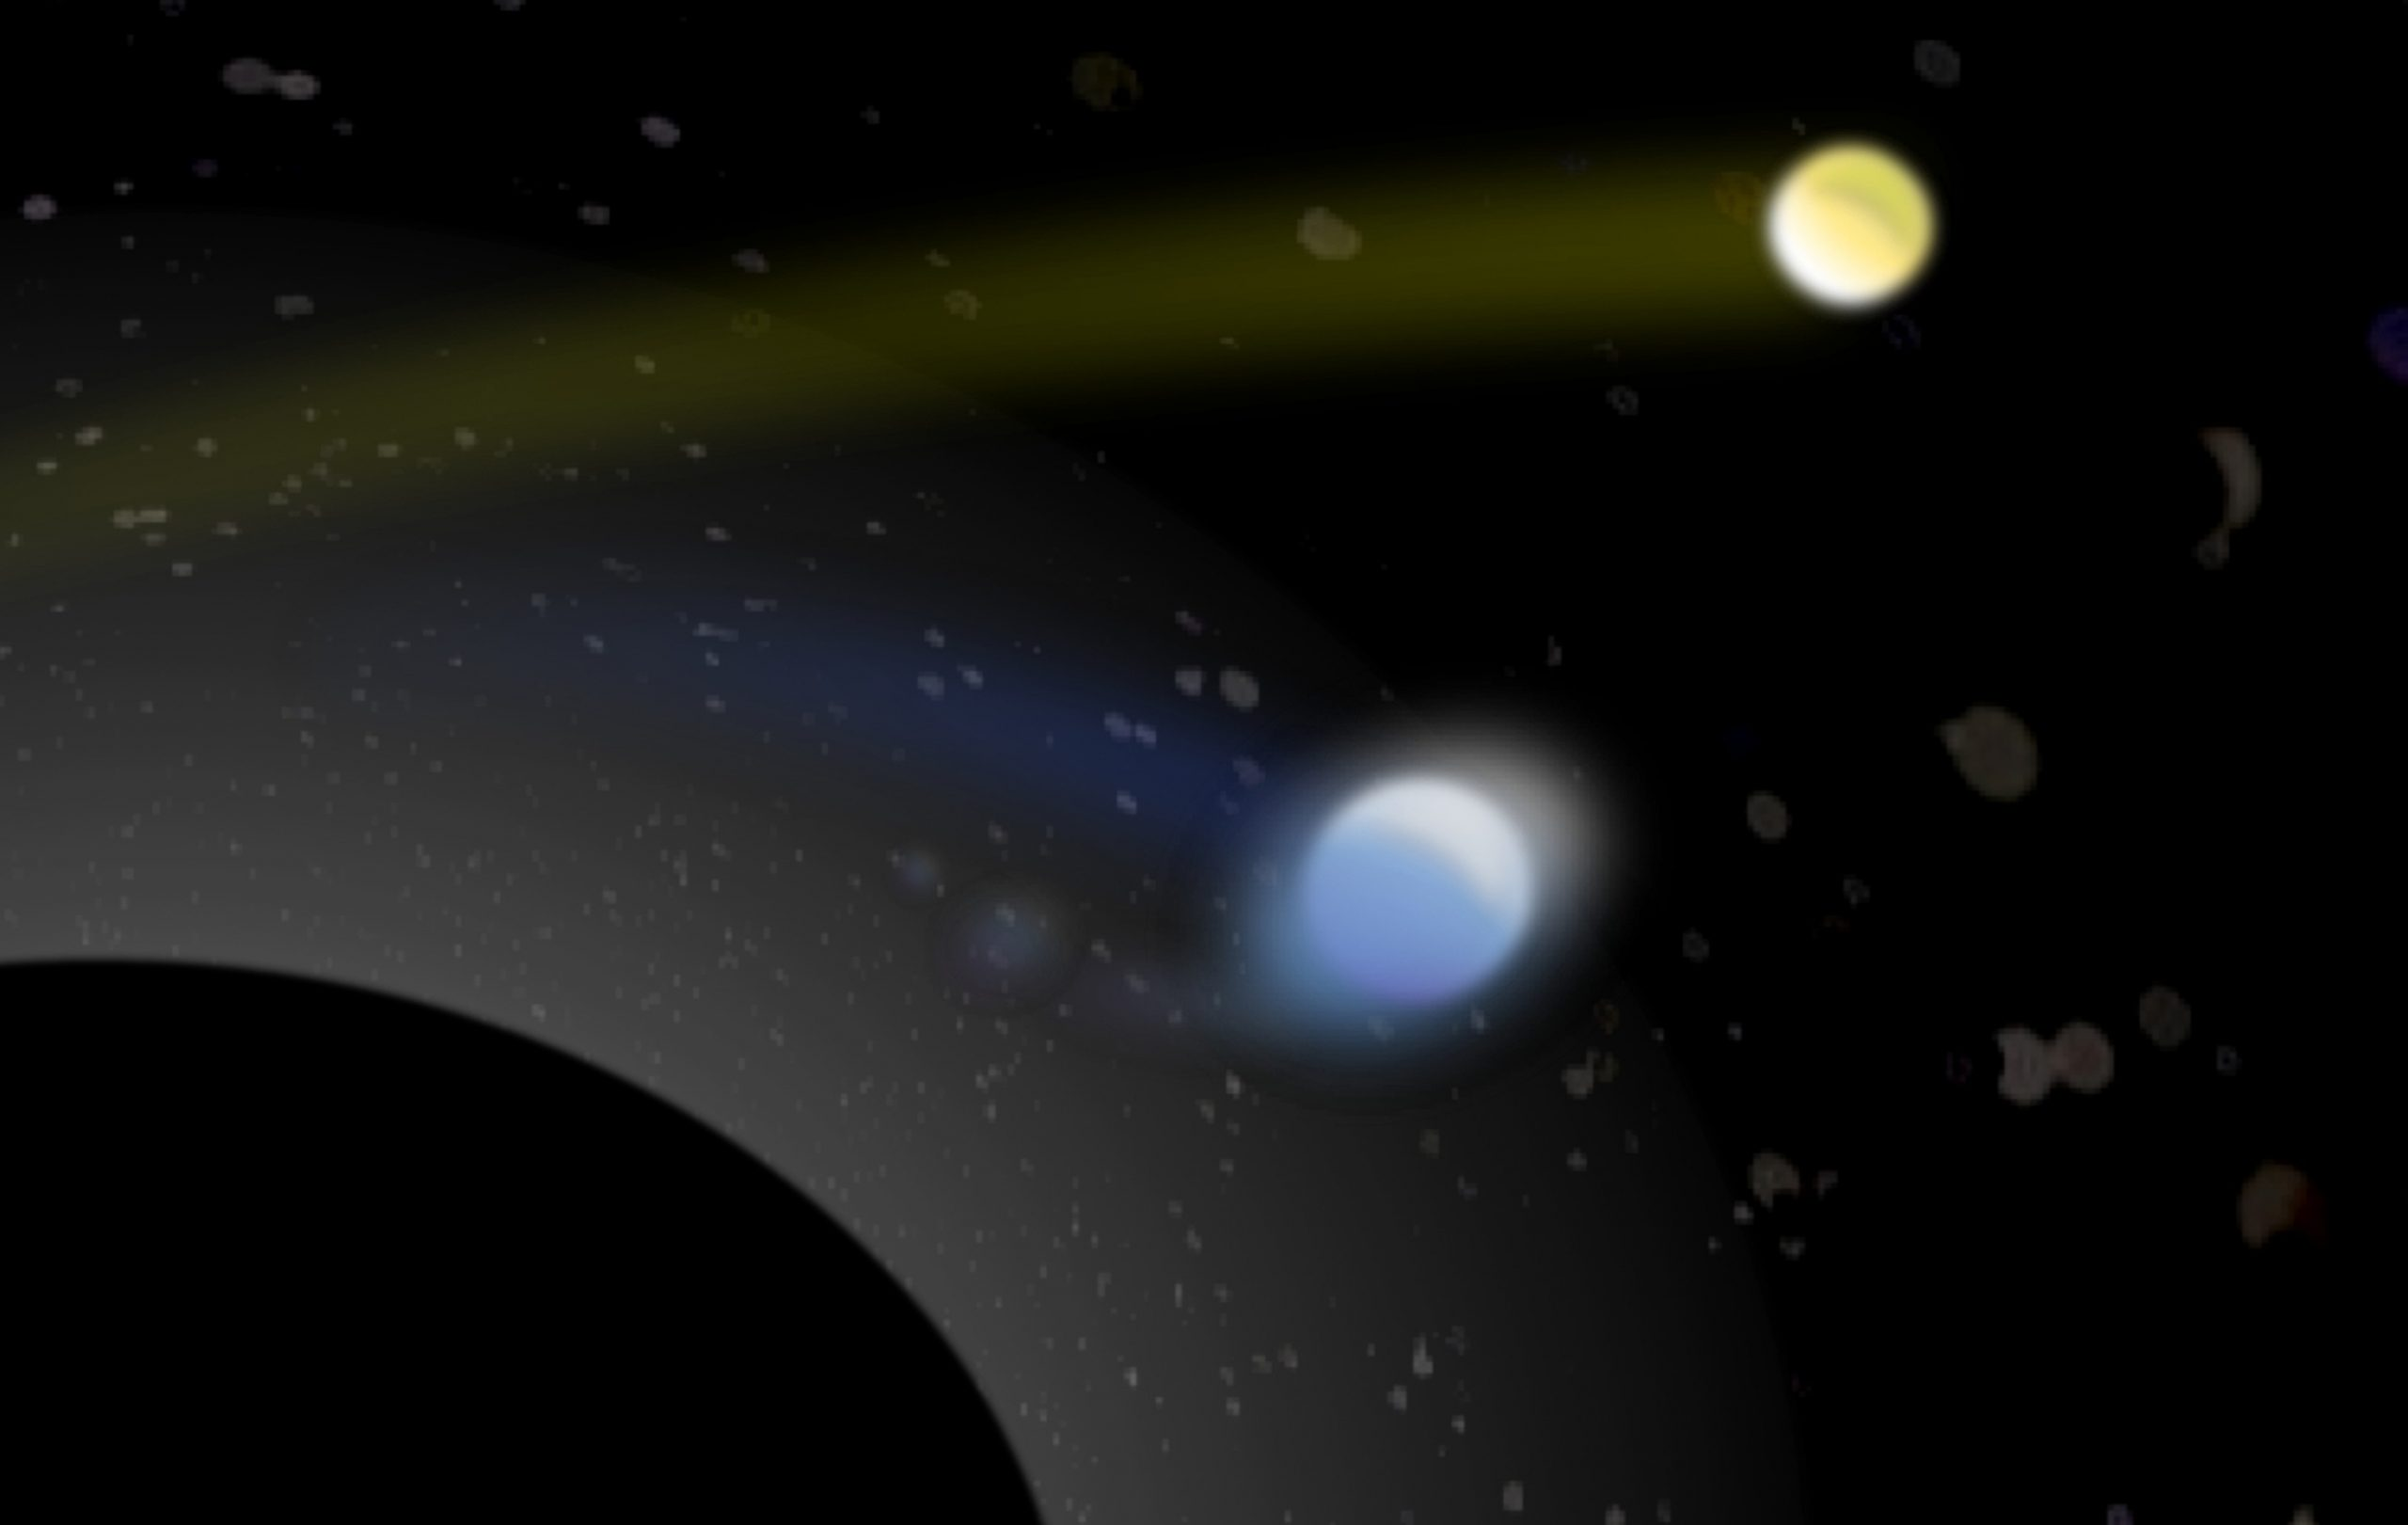 Artist's conception of a supermassive black hole (lower left) with its tremendous gravity capturing one star (bluish, center) from a pair of binary stars, while hurling the second star (yellowish, upper right) away at a hypervelocity of more than 1 million mph. The grayish blobs are other stars captured in a cluster near the black hole. They appear distorted because the black hole's gravity curves spacetime and thus bends the starlight.